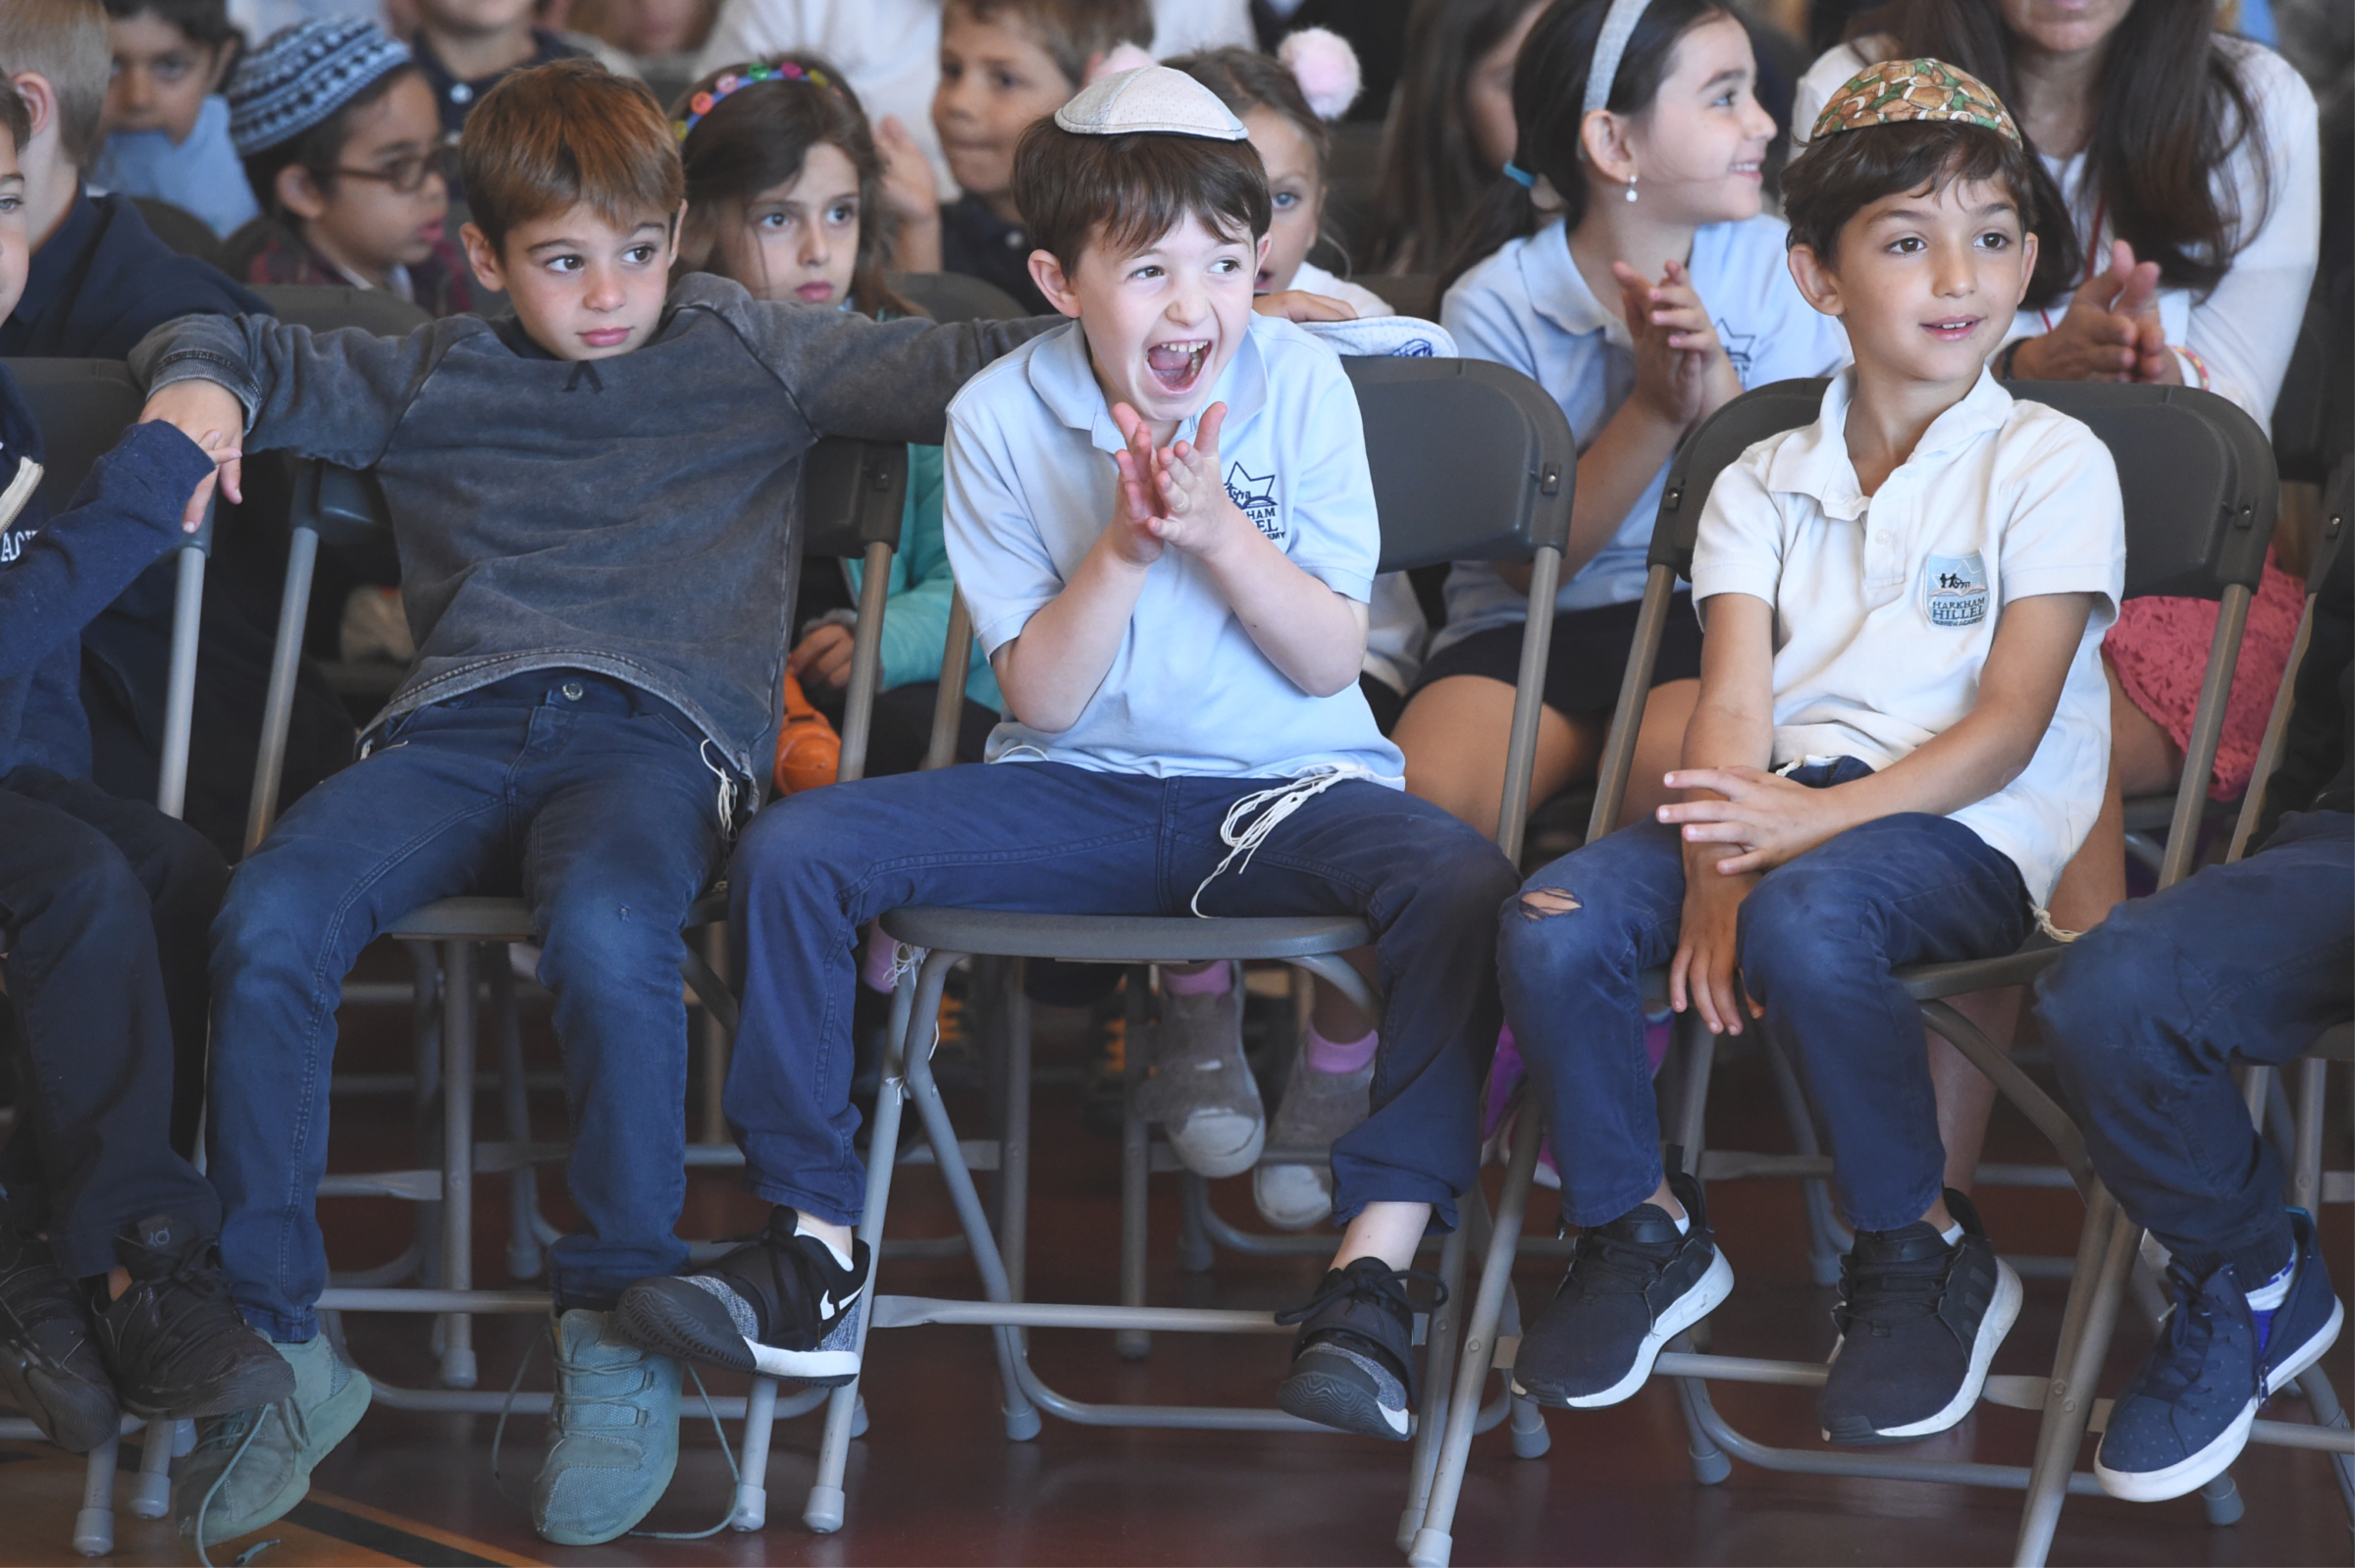 Florette Benhamou Notification Who will it be? Harkham Hillel students can't wait to find out which teacher will be honored.